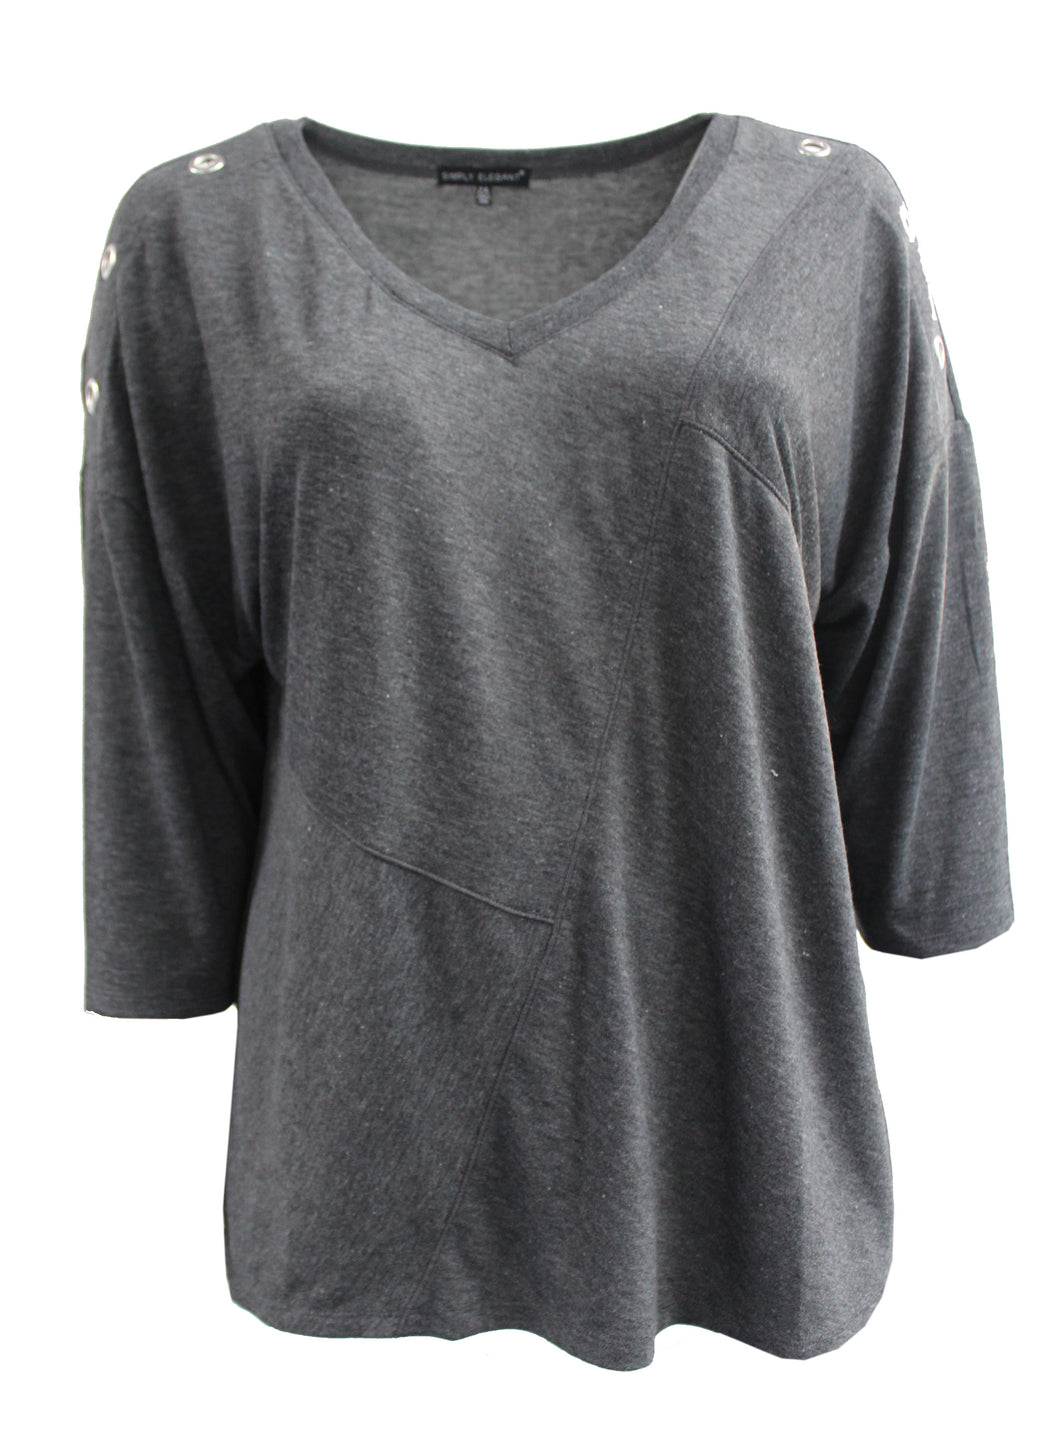 Grey Quarter Sleeve Tee with Holed Sleeves